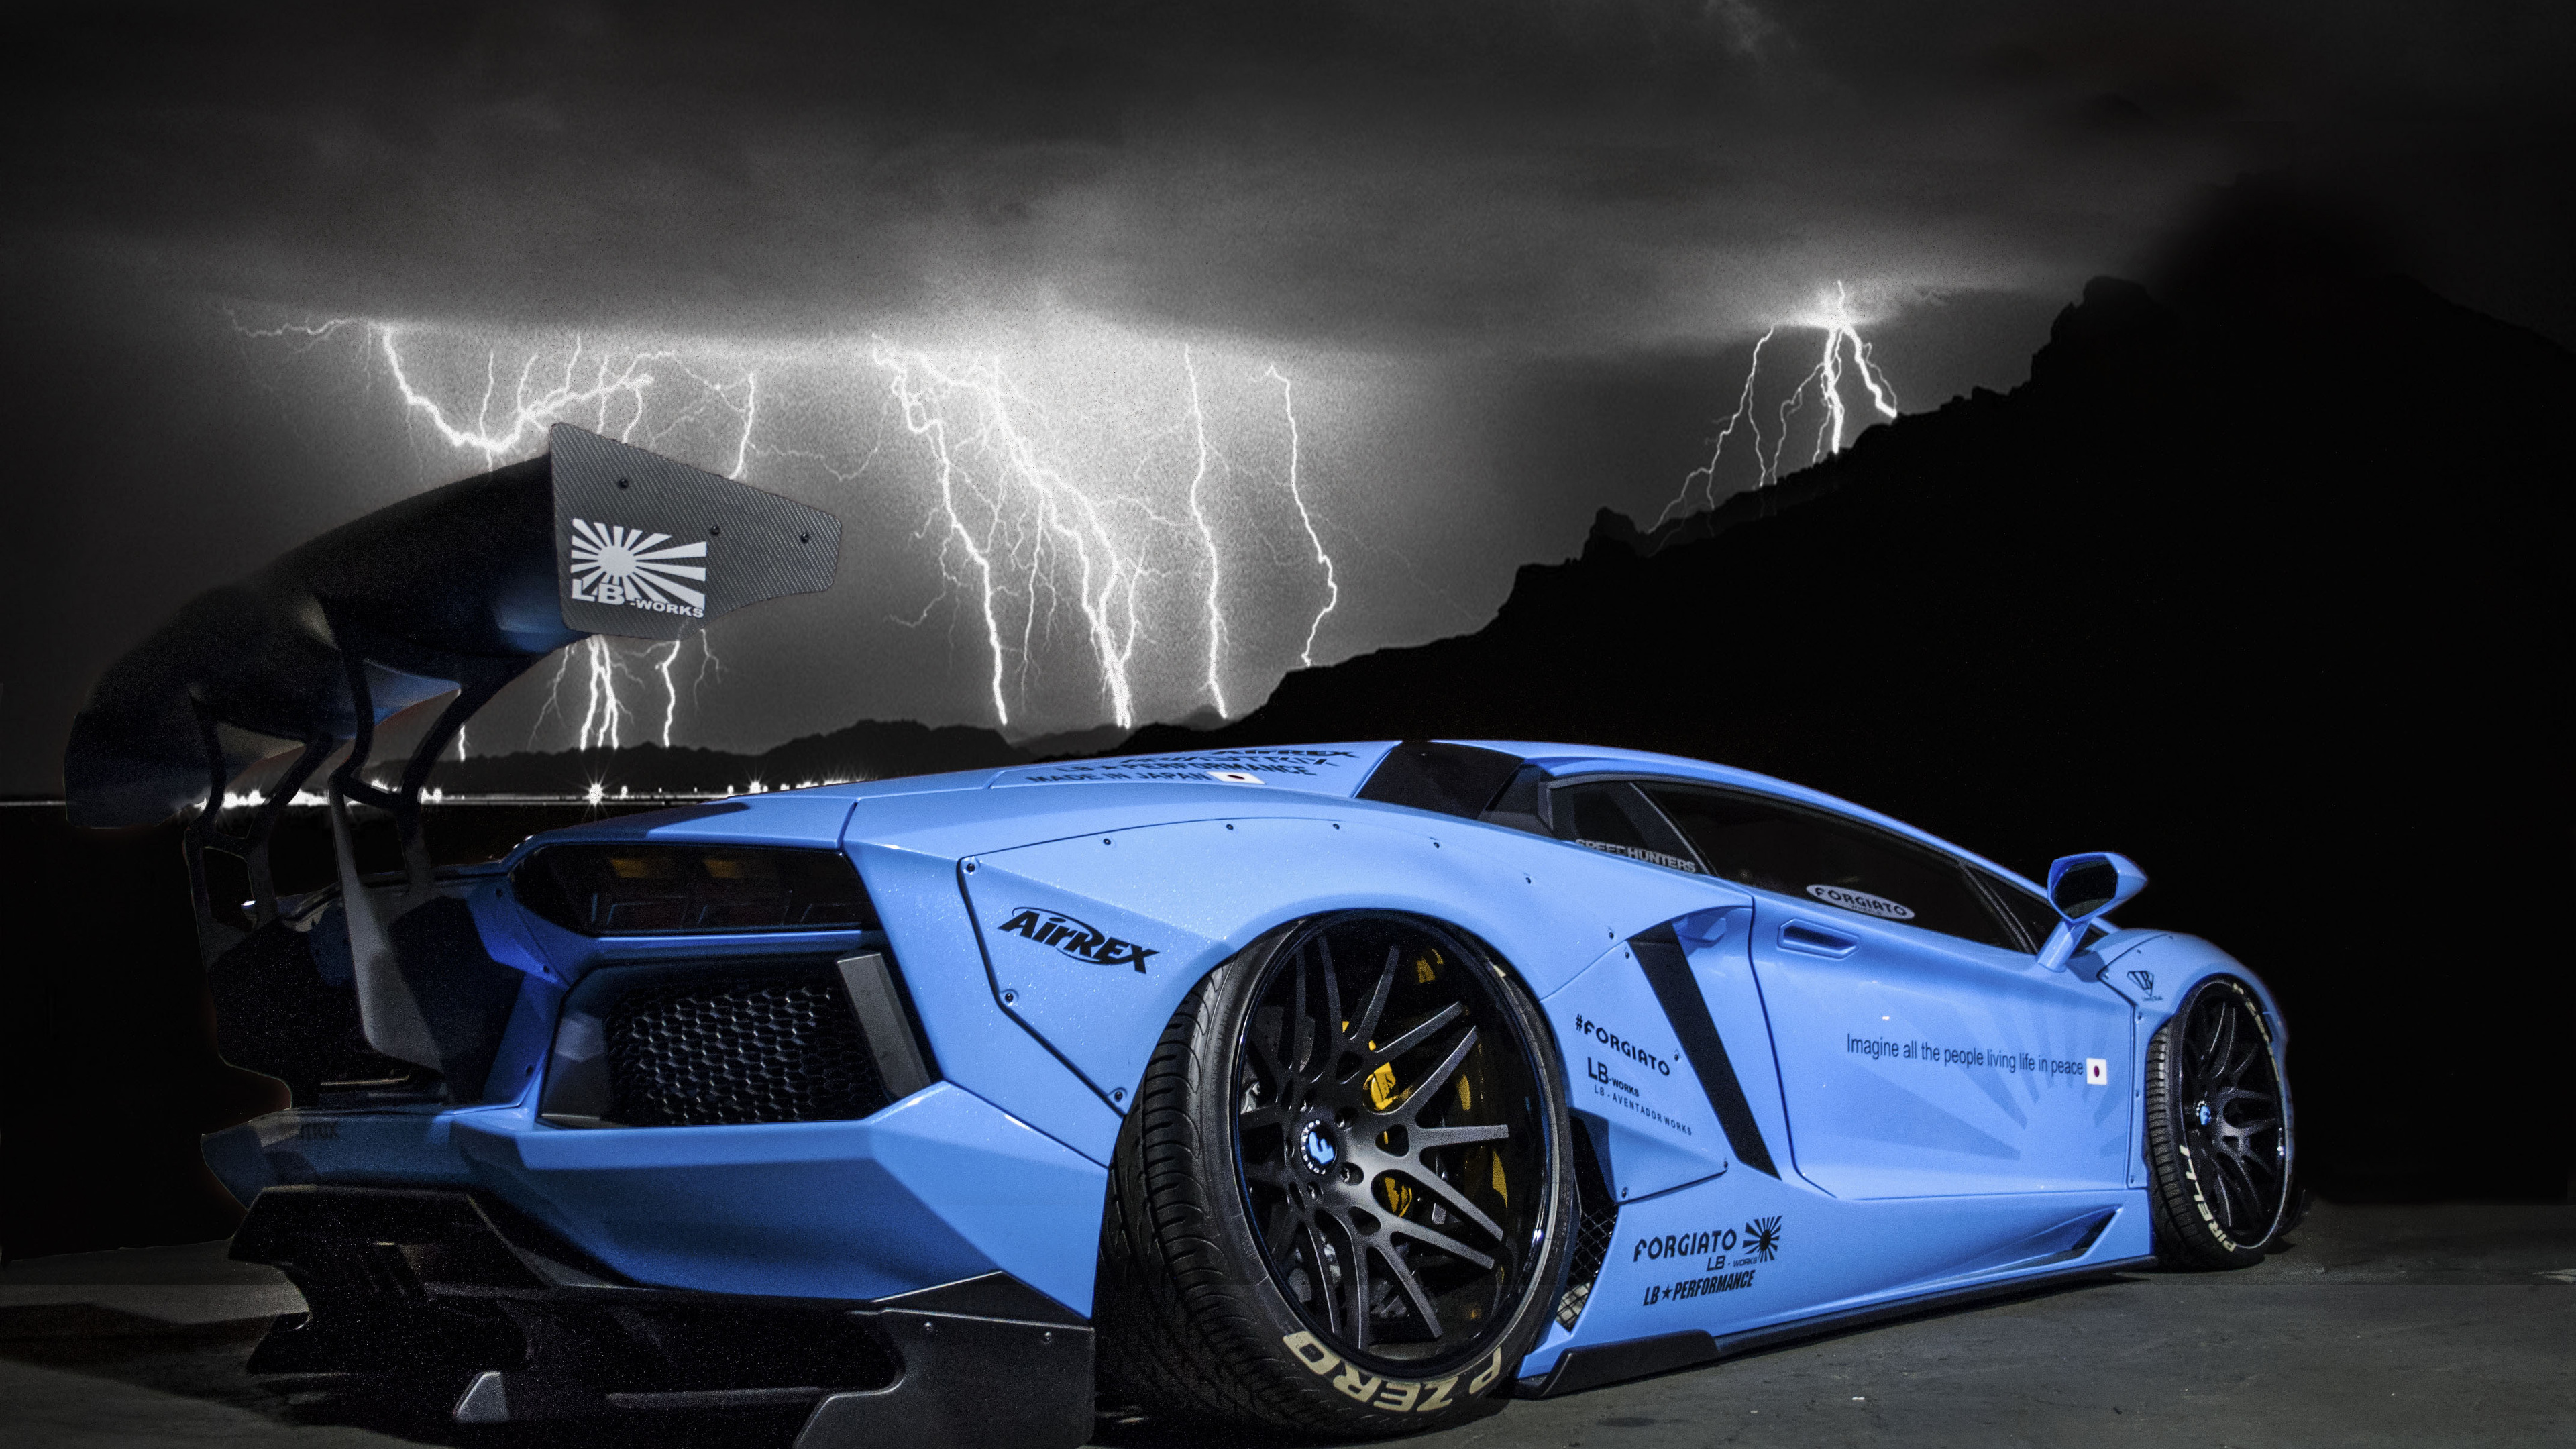 lamborghini aventador lb performance 1539111694 - Lamborghini Aventador LB Performance - lamborghini wallpapers, lamborghini aventador wallpapers, hd-wallpapers, cars wallpapers, 5k wallpapers, 4k-wallpapers